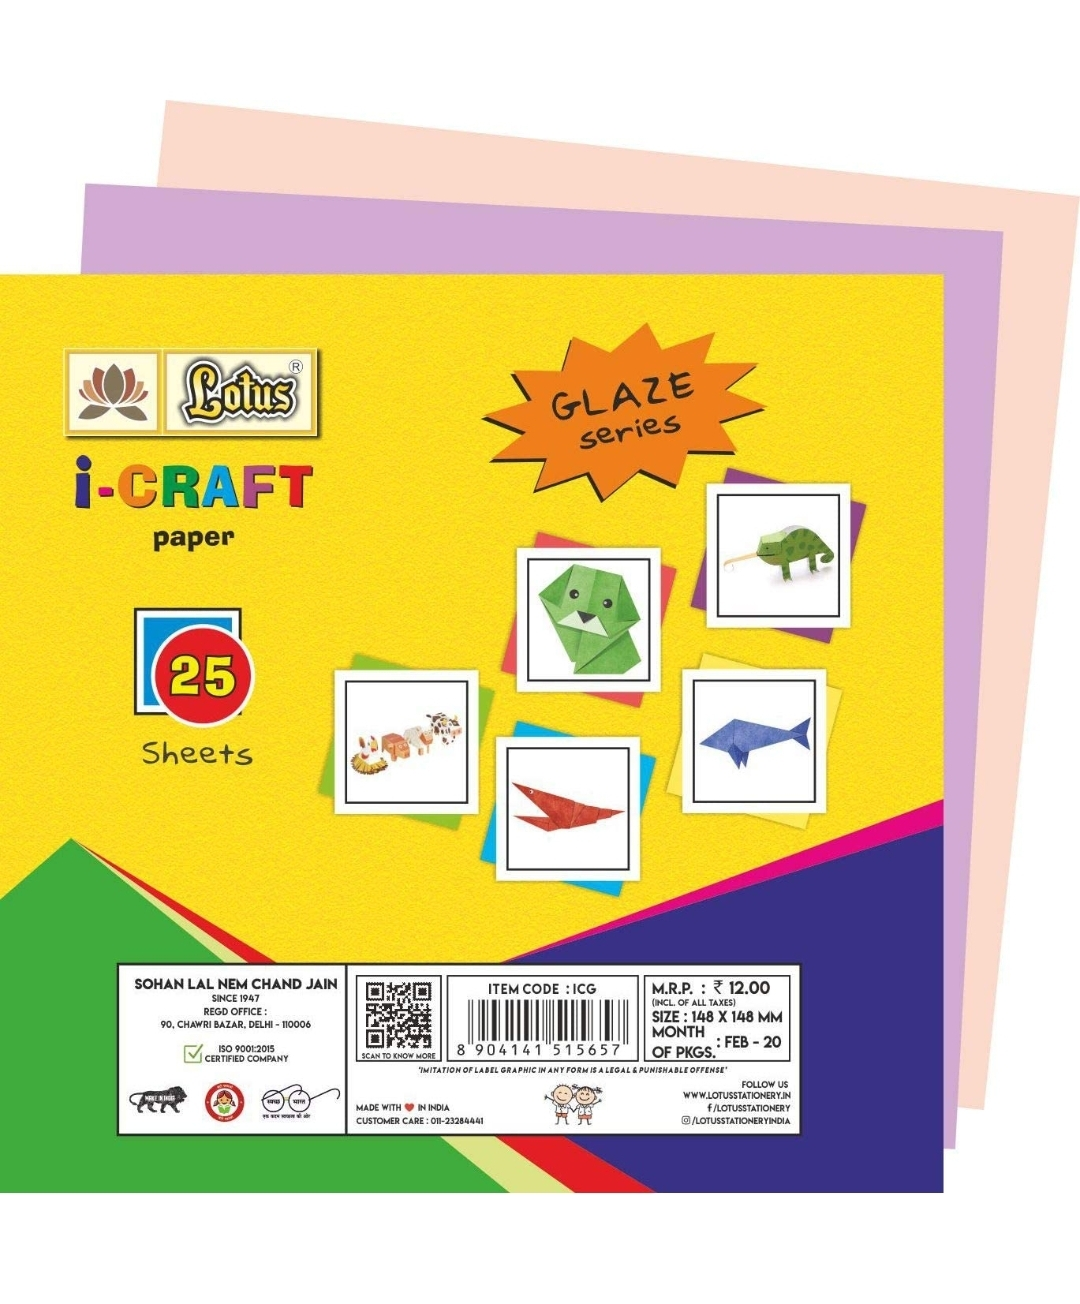 Lotus I - Craft Paper, Glaze Series, Square Paper, Multi Color, 14.8 X 14.8 cm, 1 Pack of 25 Sheets